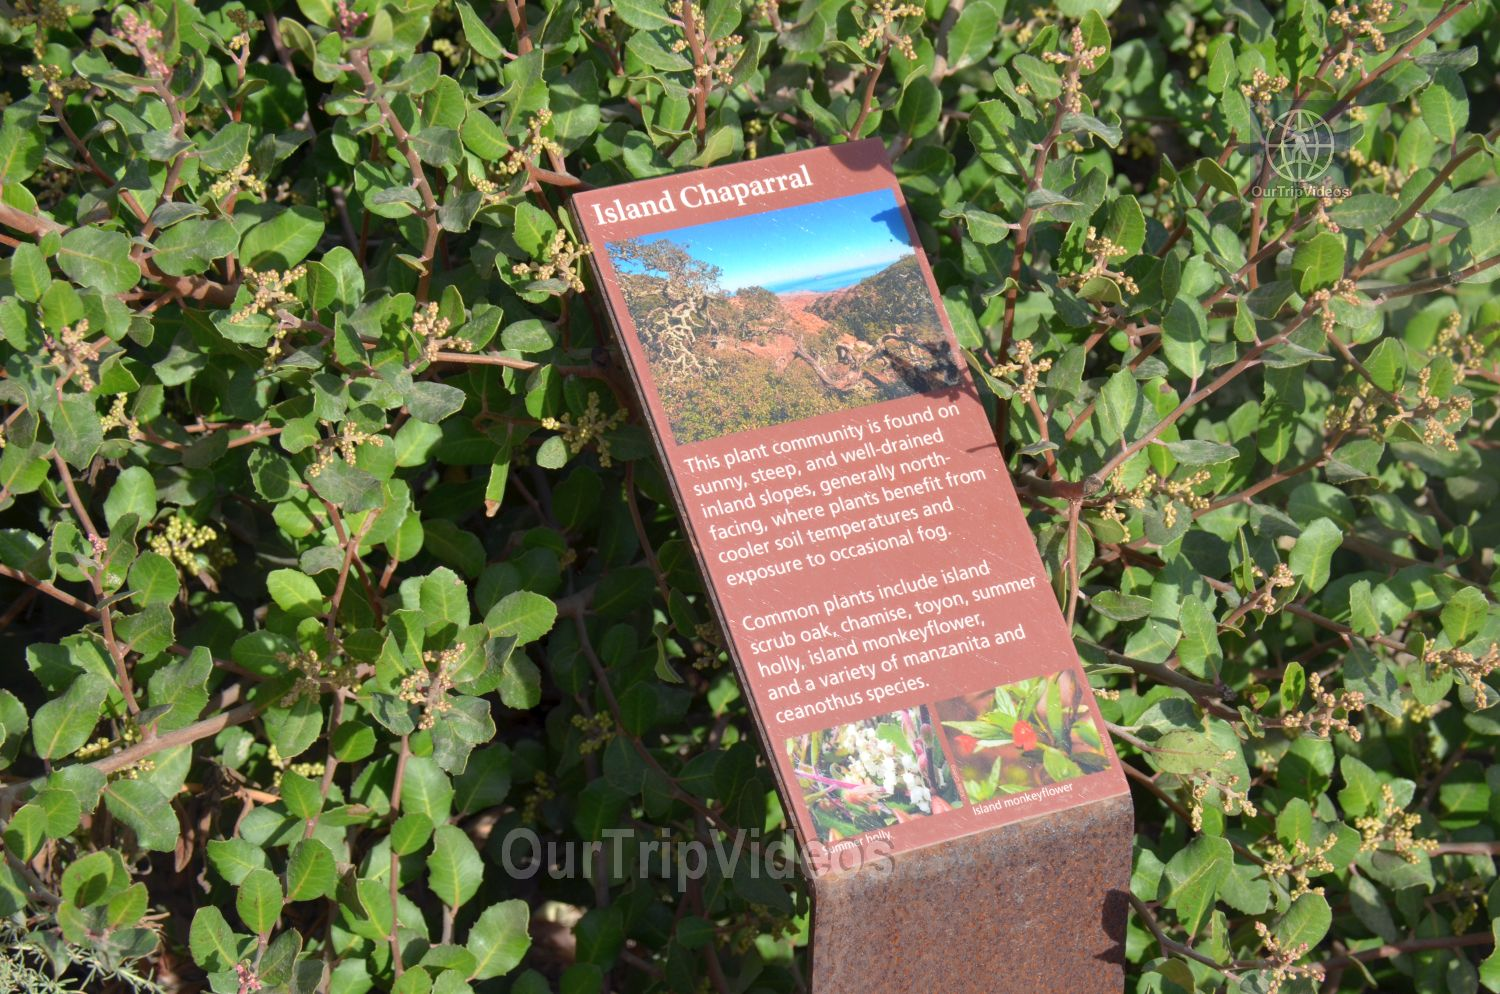 The Robert JL Visitor Center and Harbor cove beach, Ventura, CA, USA - Picture 10 of 25